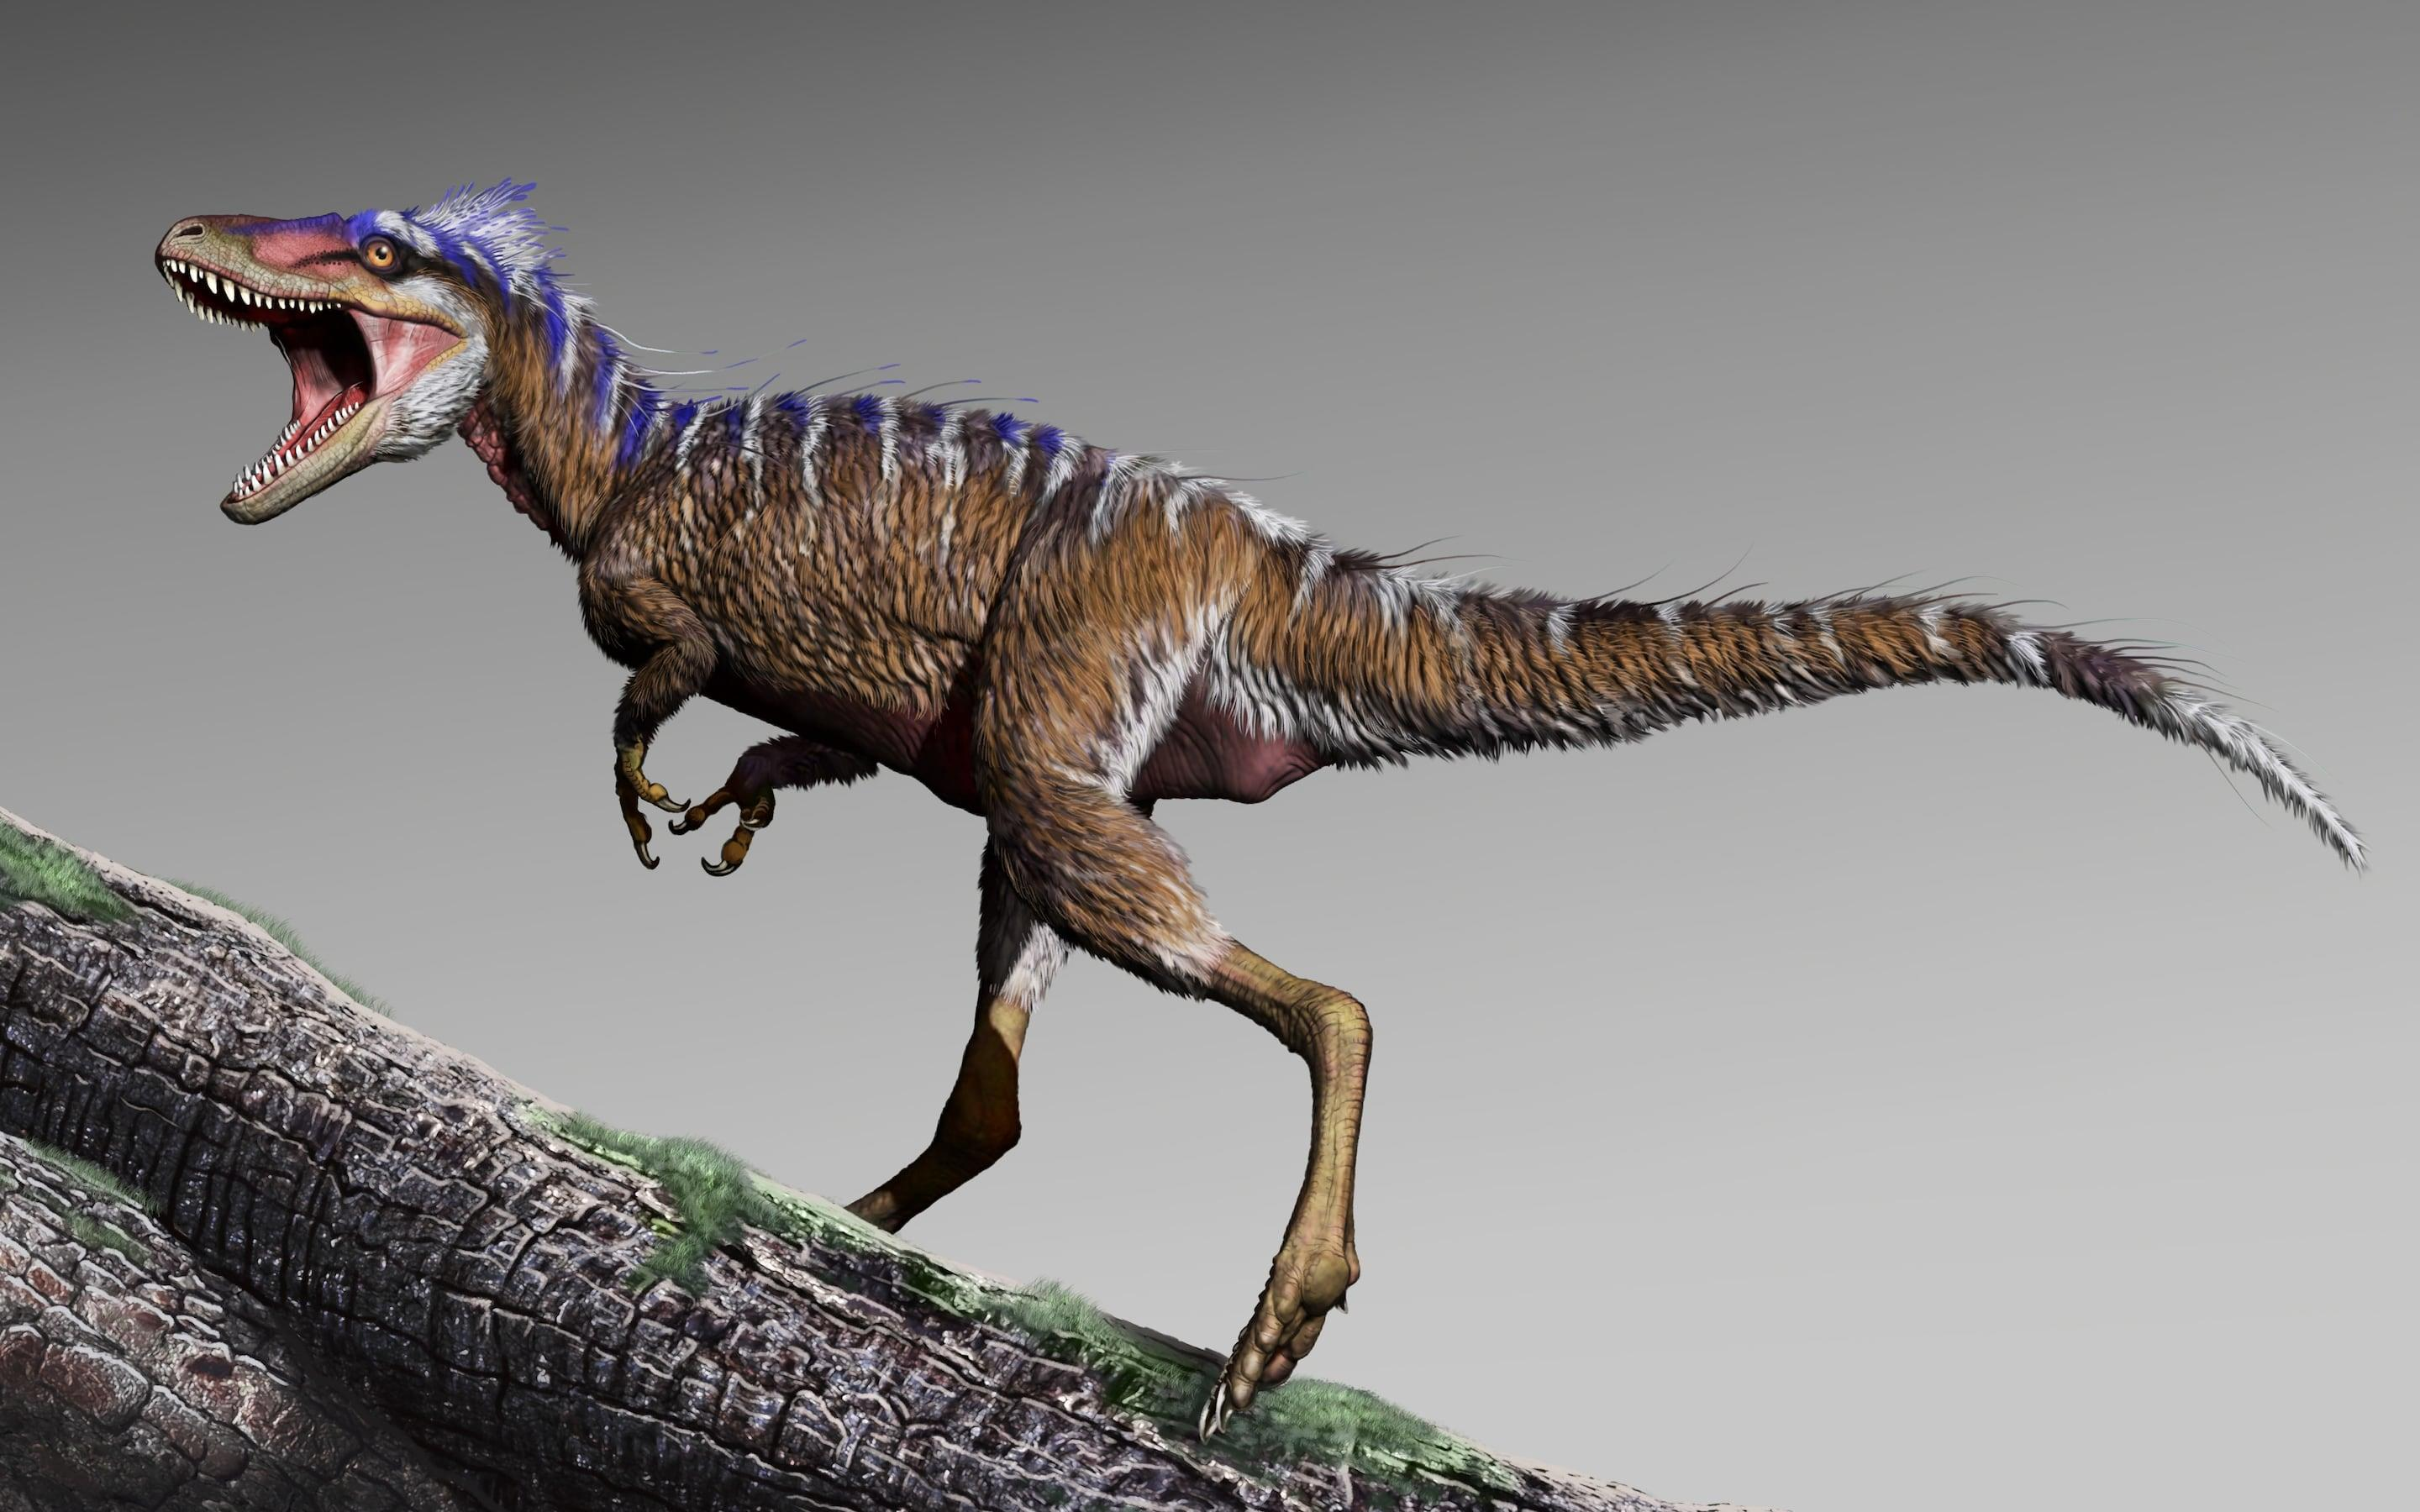 Tiny T-rex ancestor discovered in Utah